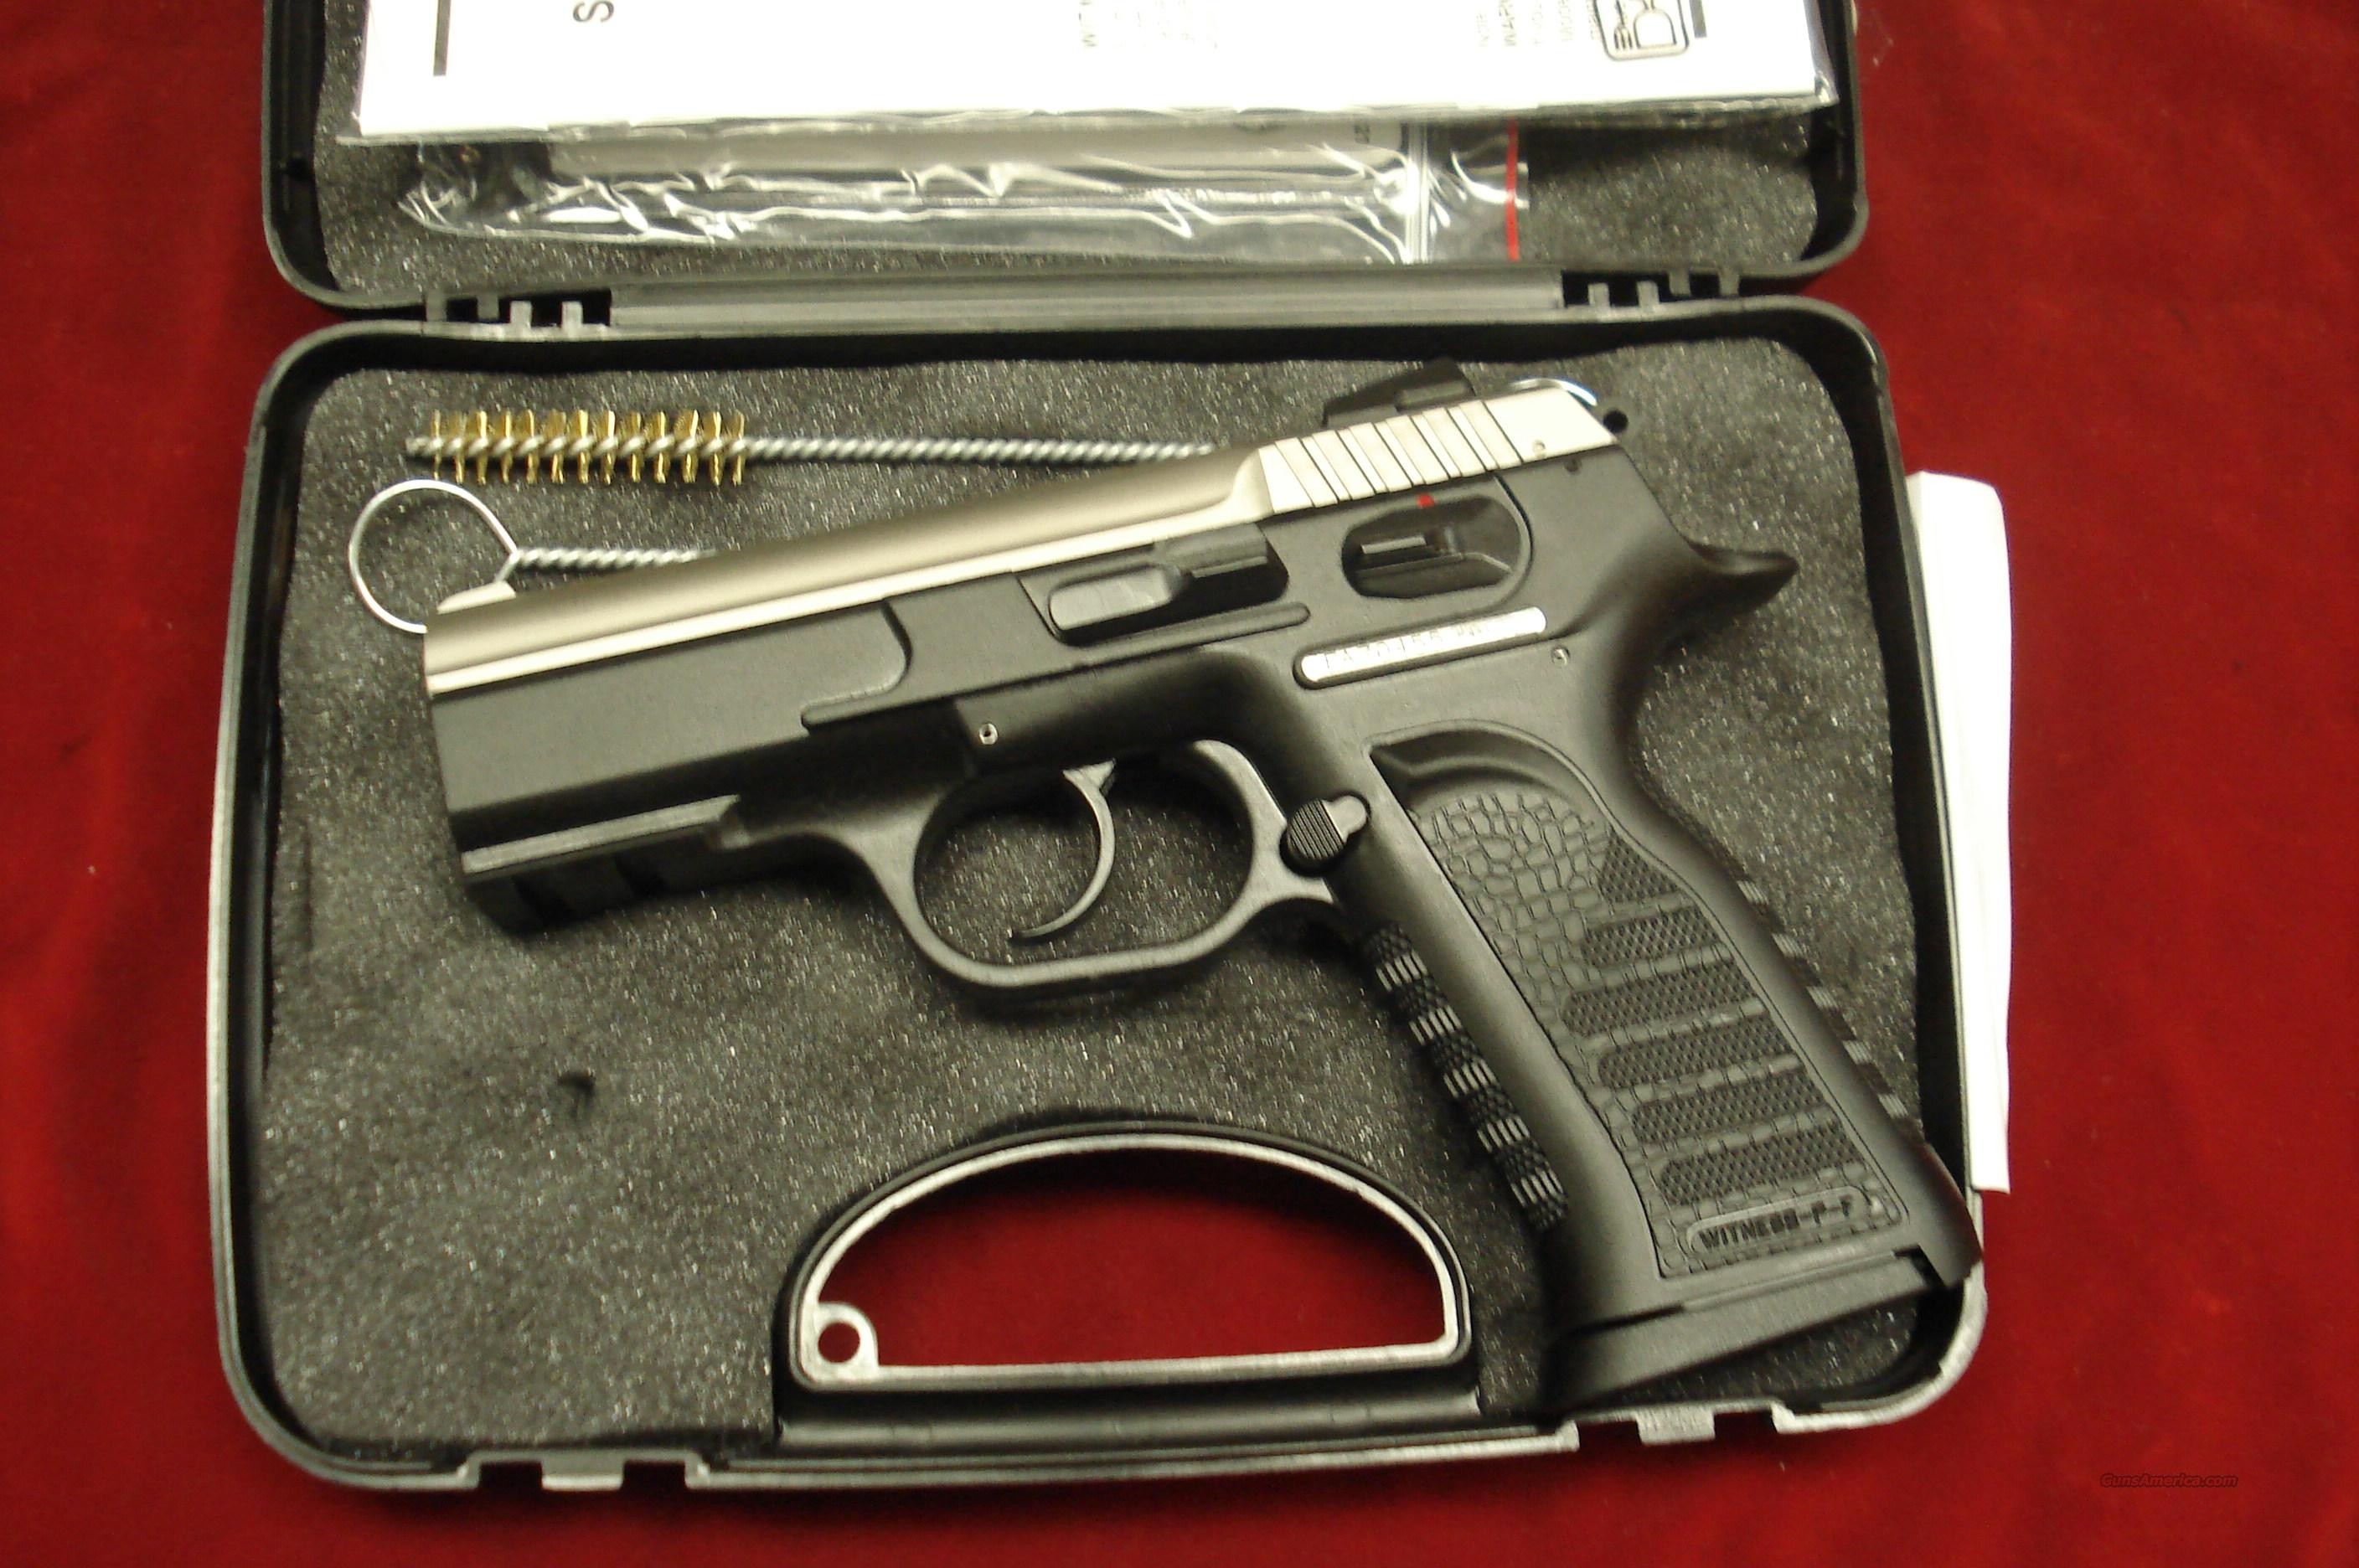 EAA TANFOGLIO WITNESS P.CARRY 45ACP CAL. STAINLESS NEW  (600245)  Guns > Pistols > EAA Pistols > Other